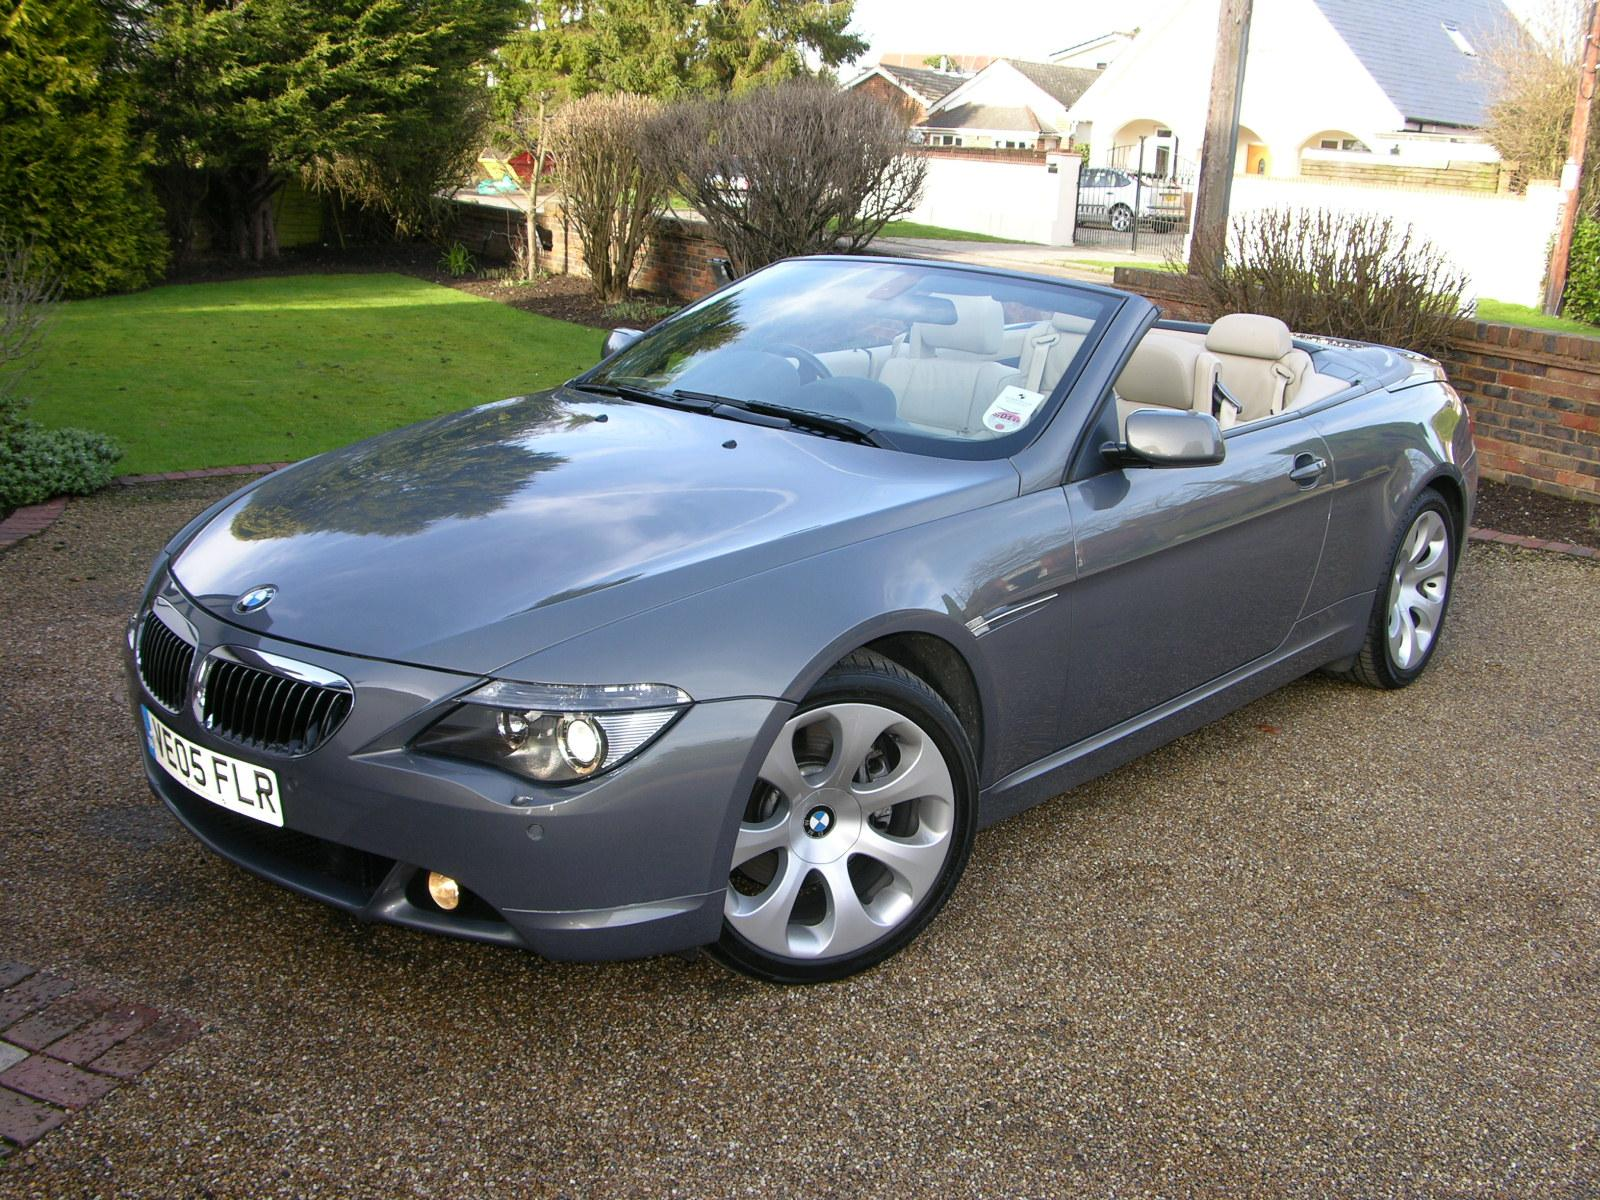 bmw 645 ci cabriolet photos reviews news specs buy car. Black Bedroom Furniture Sets. Home Design Ideas